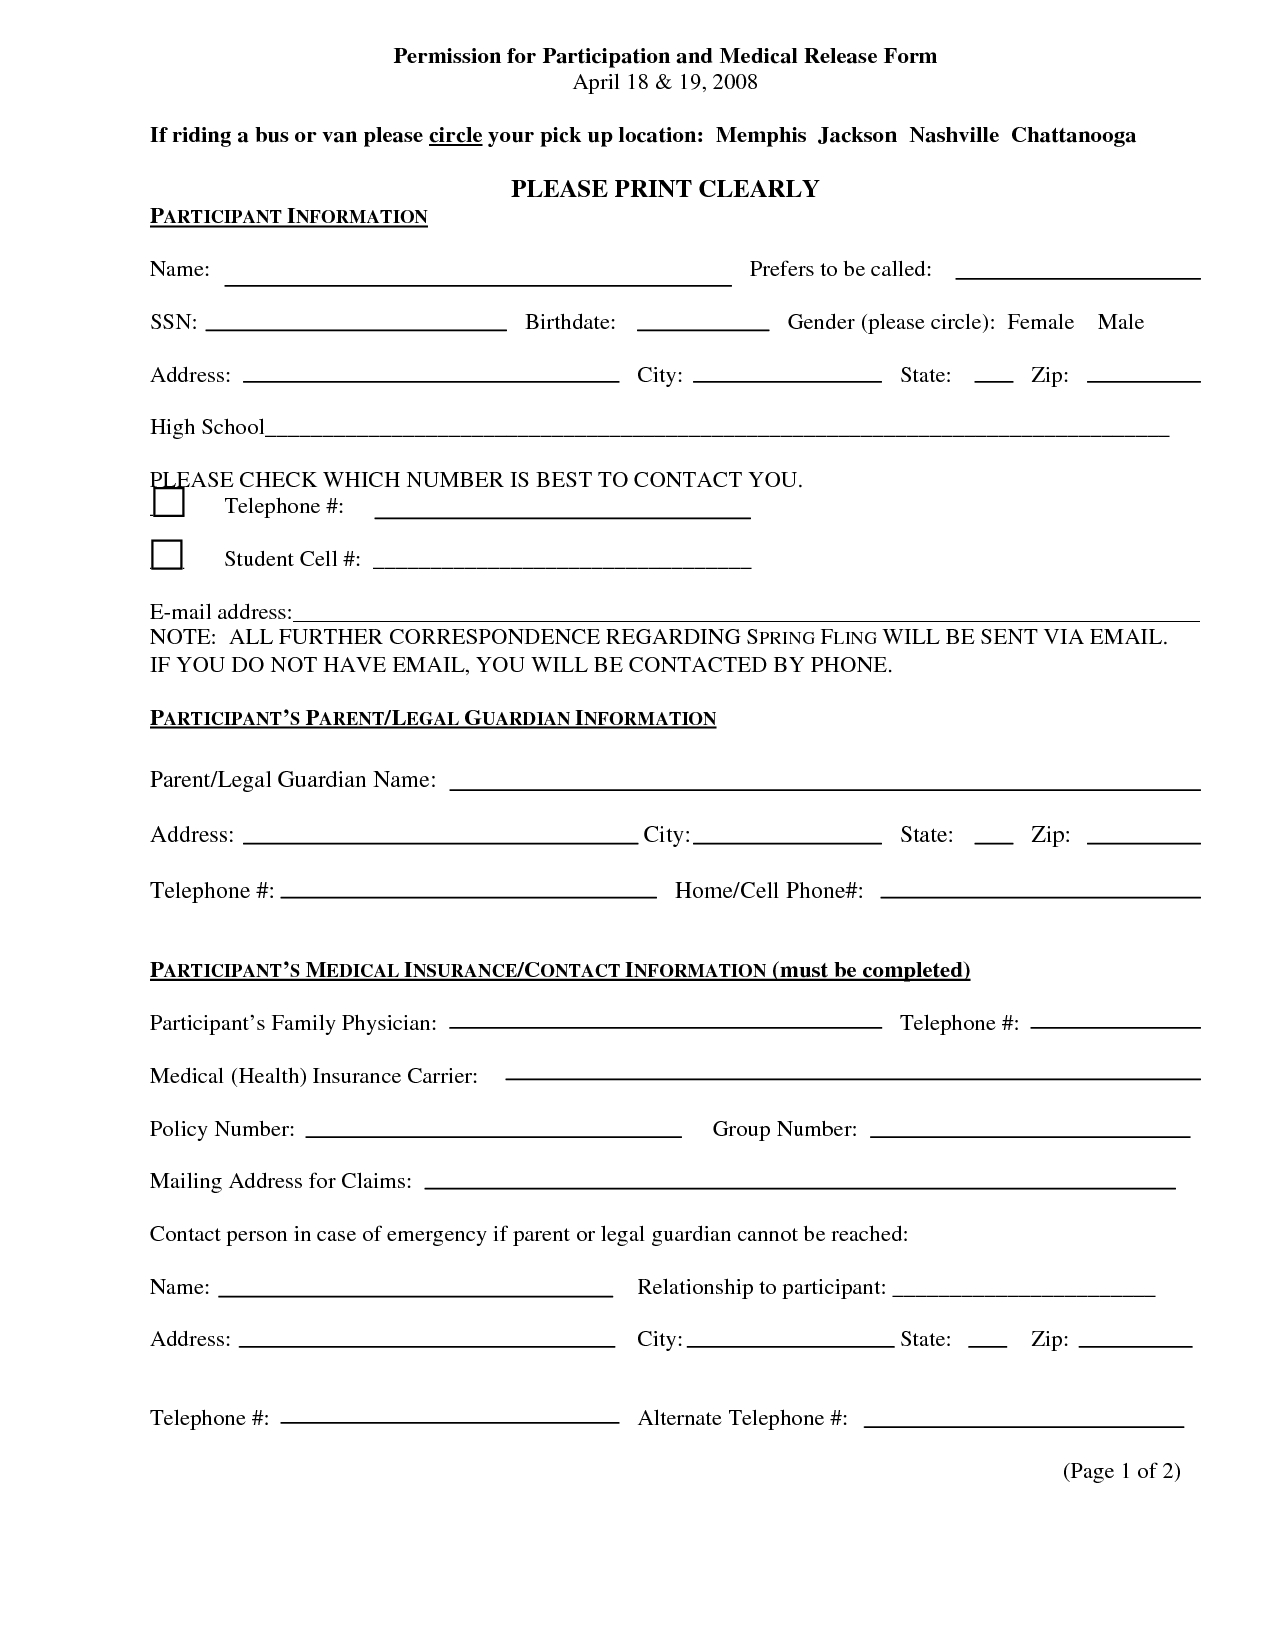 Pingiovanni Mastrocola On Pain No Gain | Incident Report Form - Free Printable Medical Forms Kit